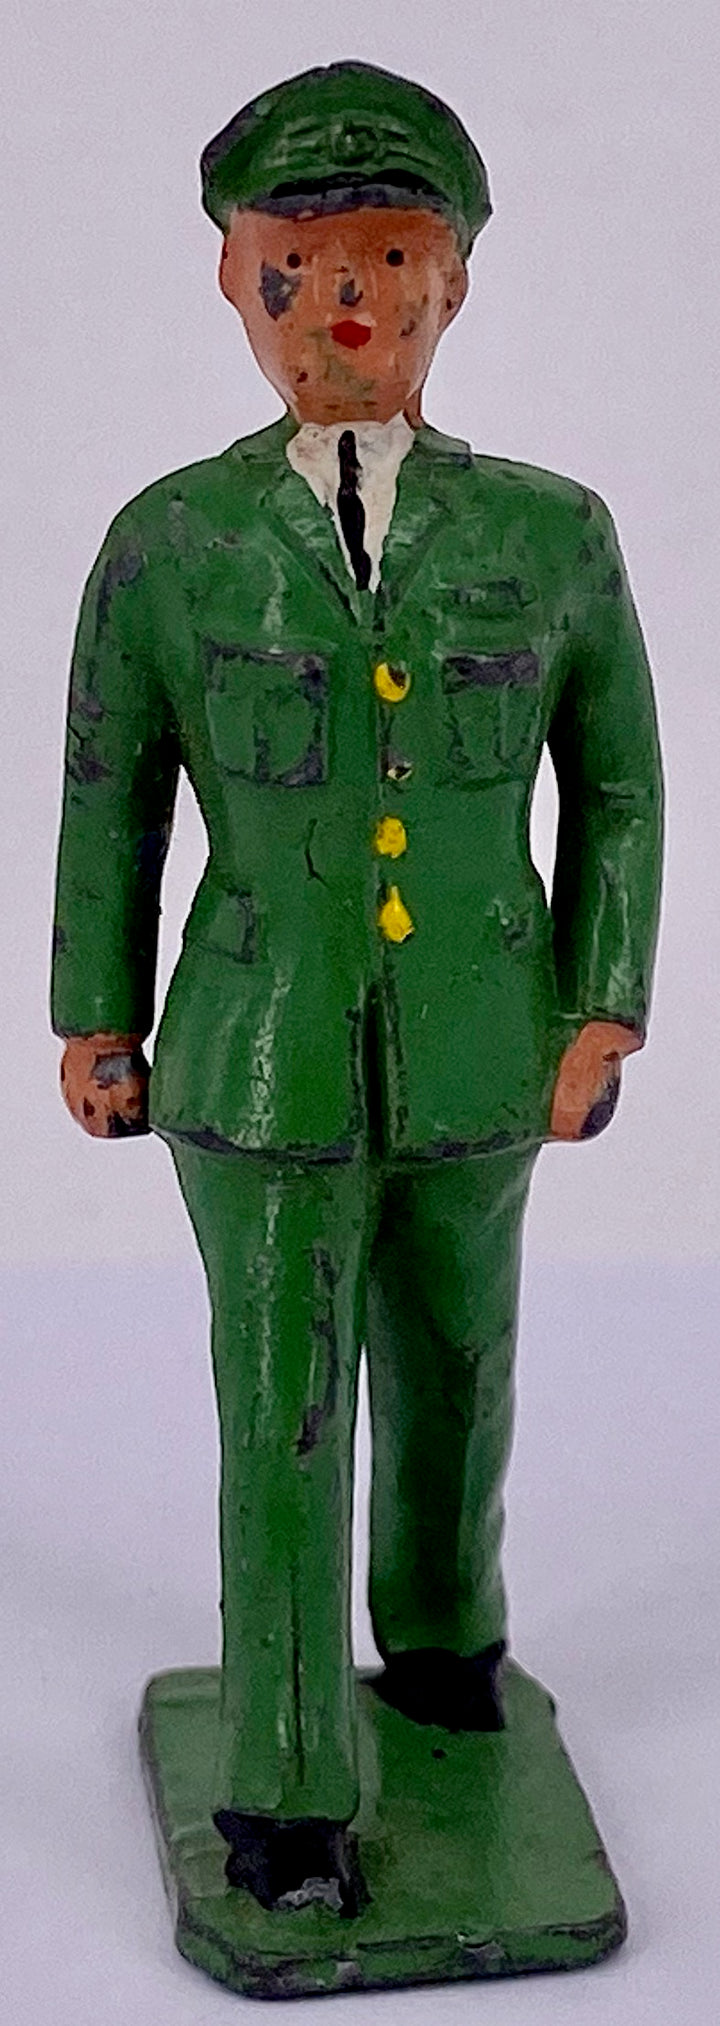 Crescent Dan Dare in uniform